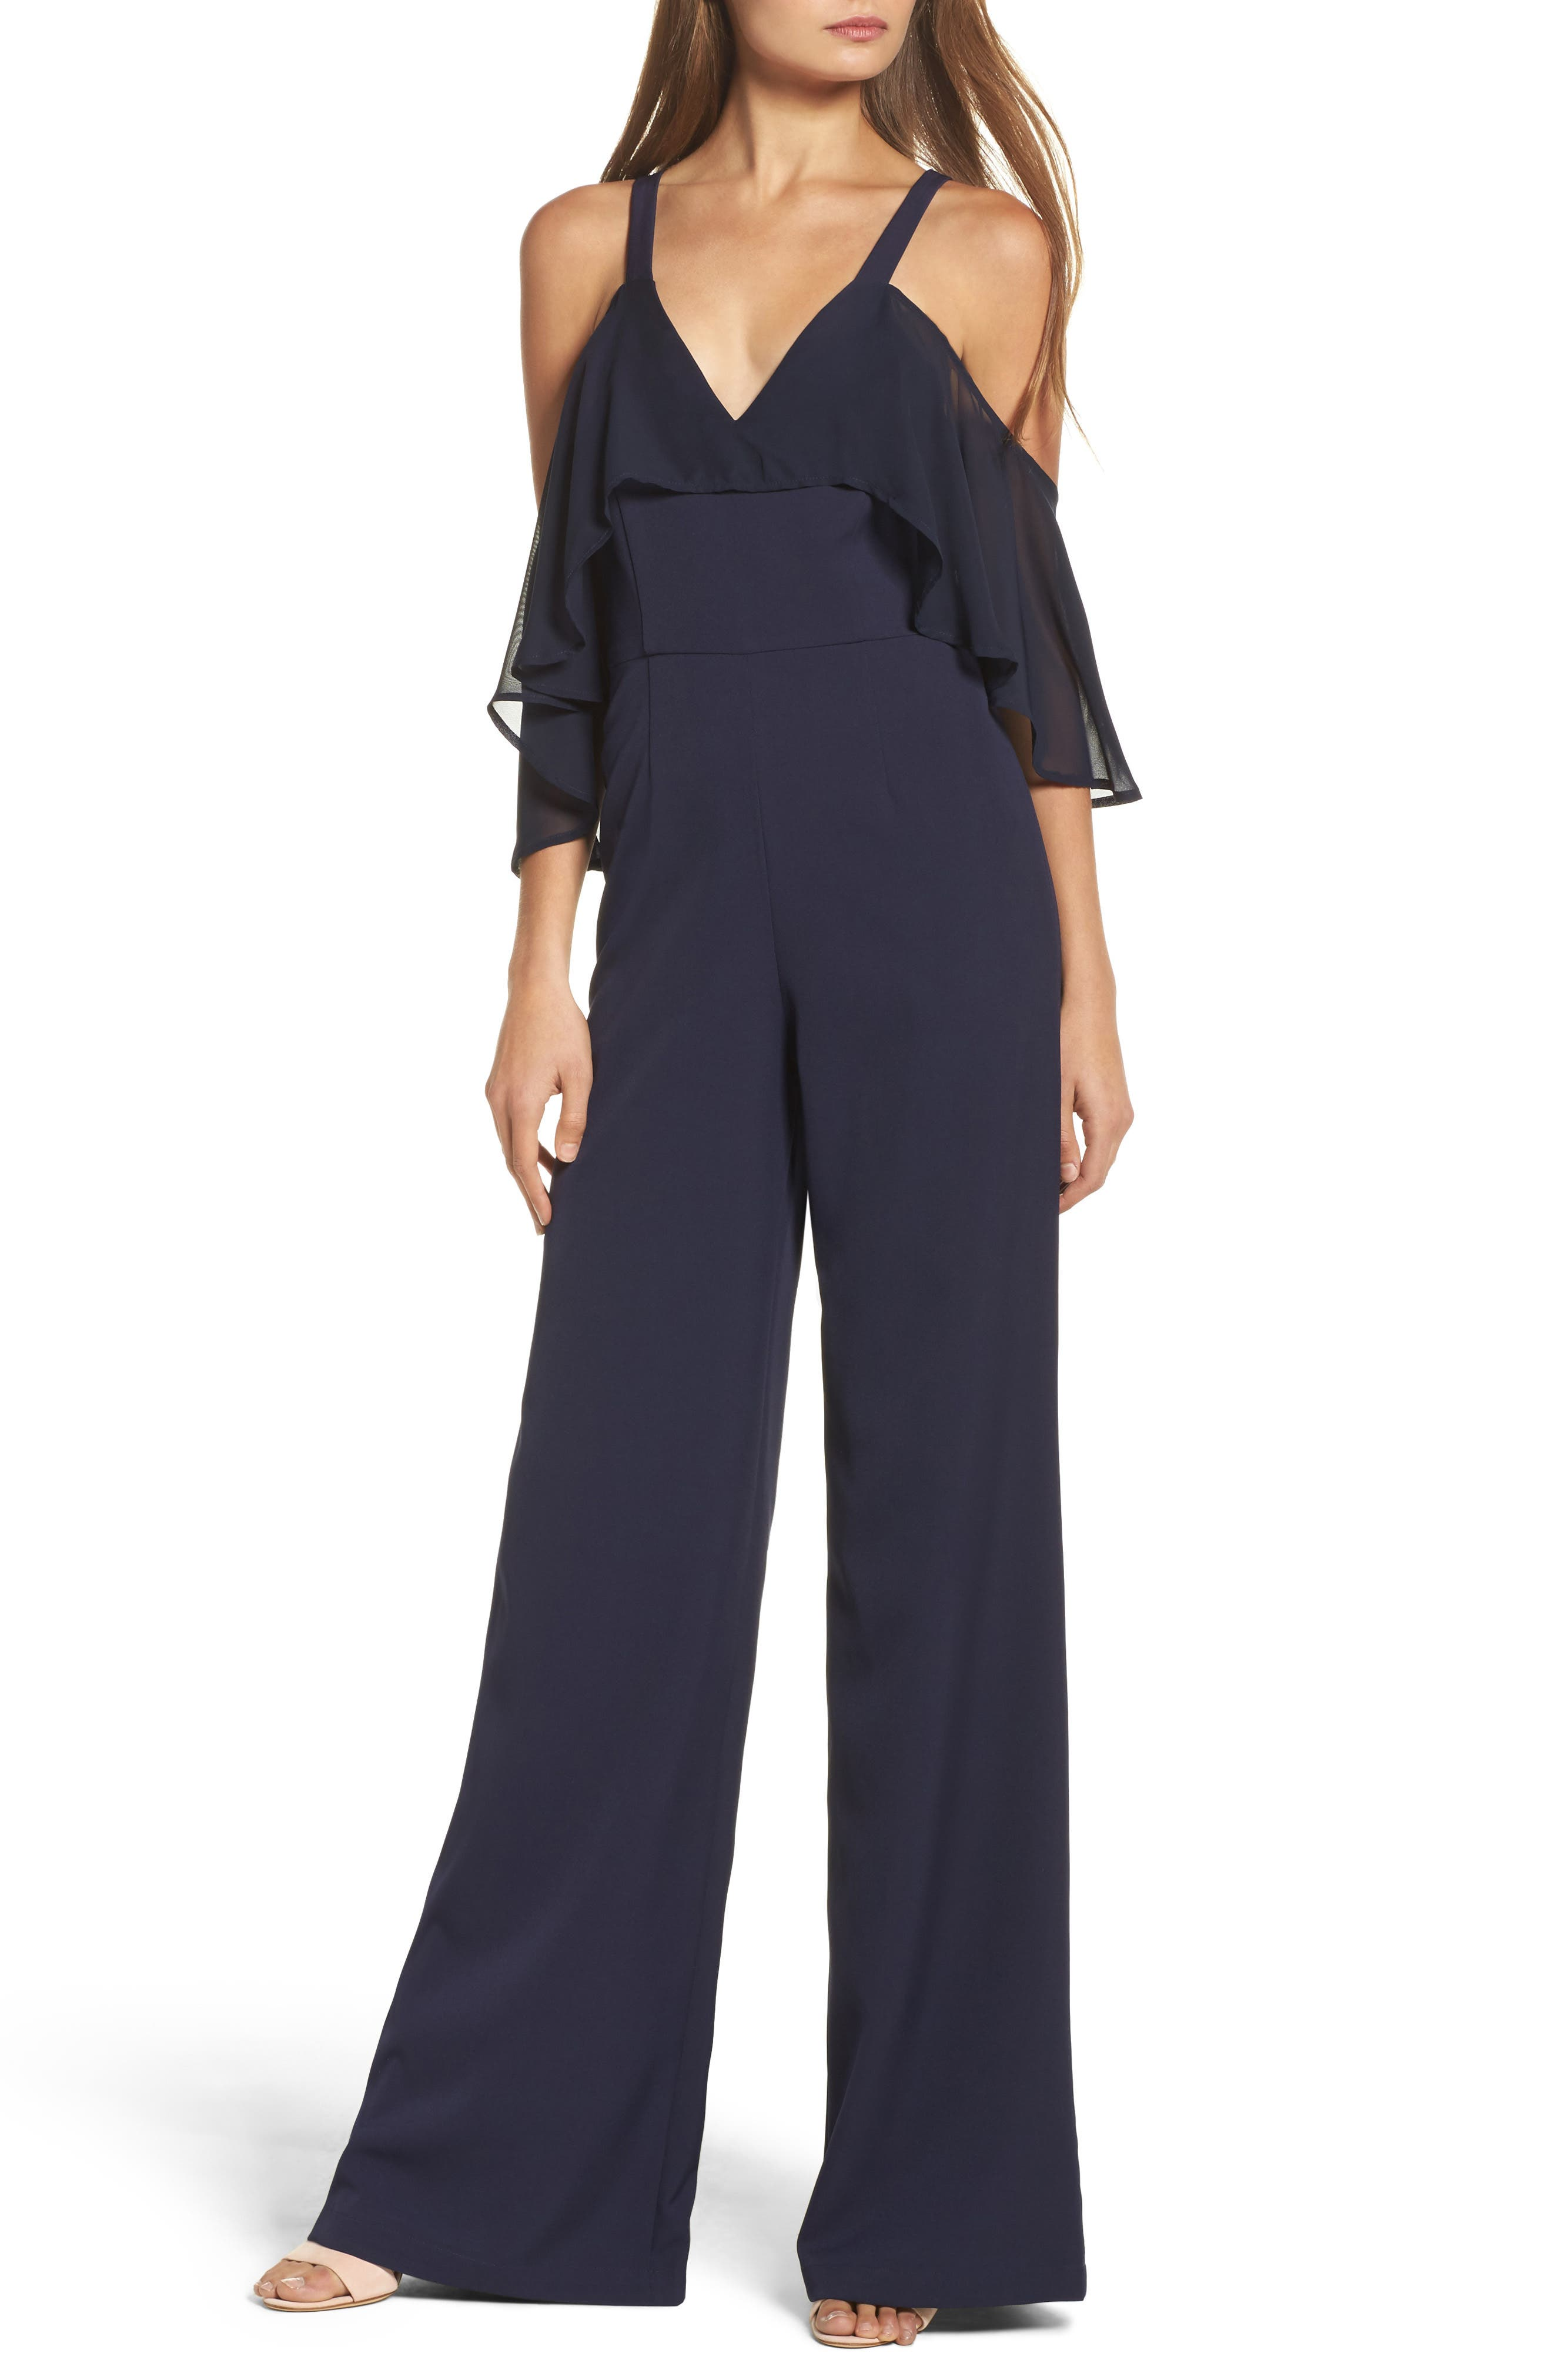 Oliver Cold Shoulder Ruffle Jumpsuit,                             Main thumbnail 1, color,                             Blue Nights